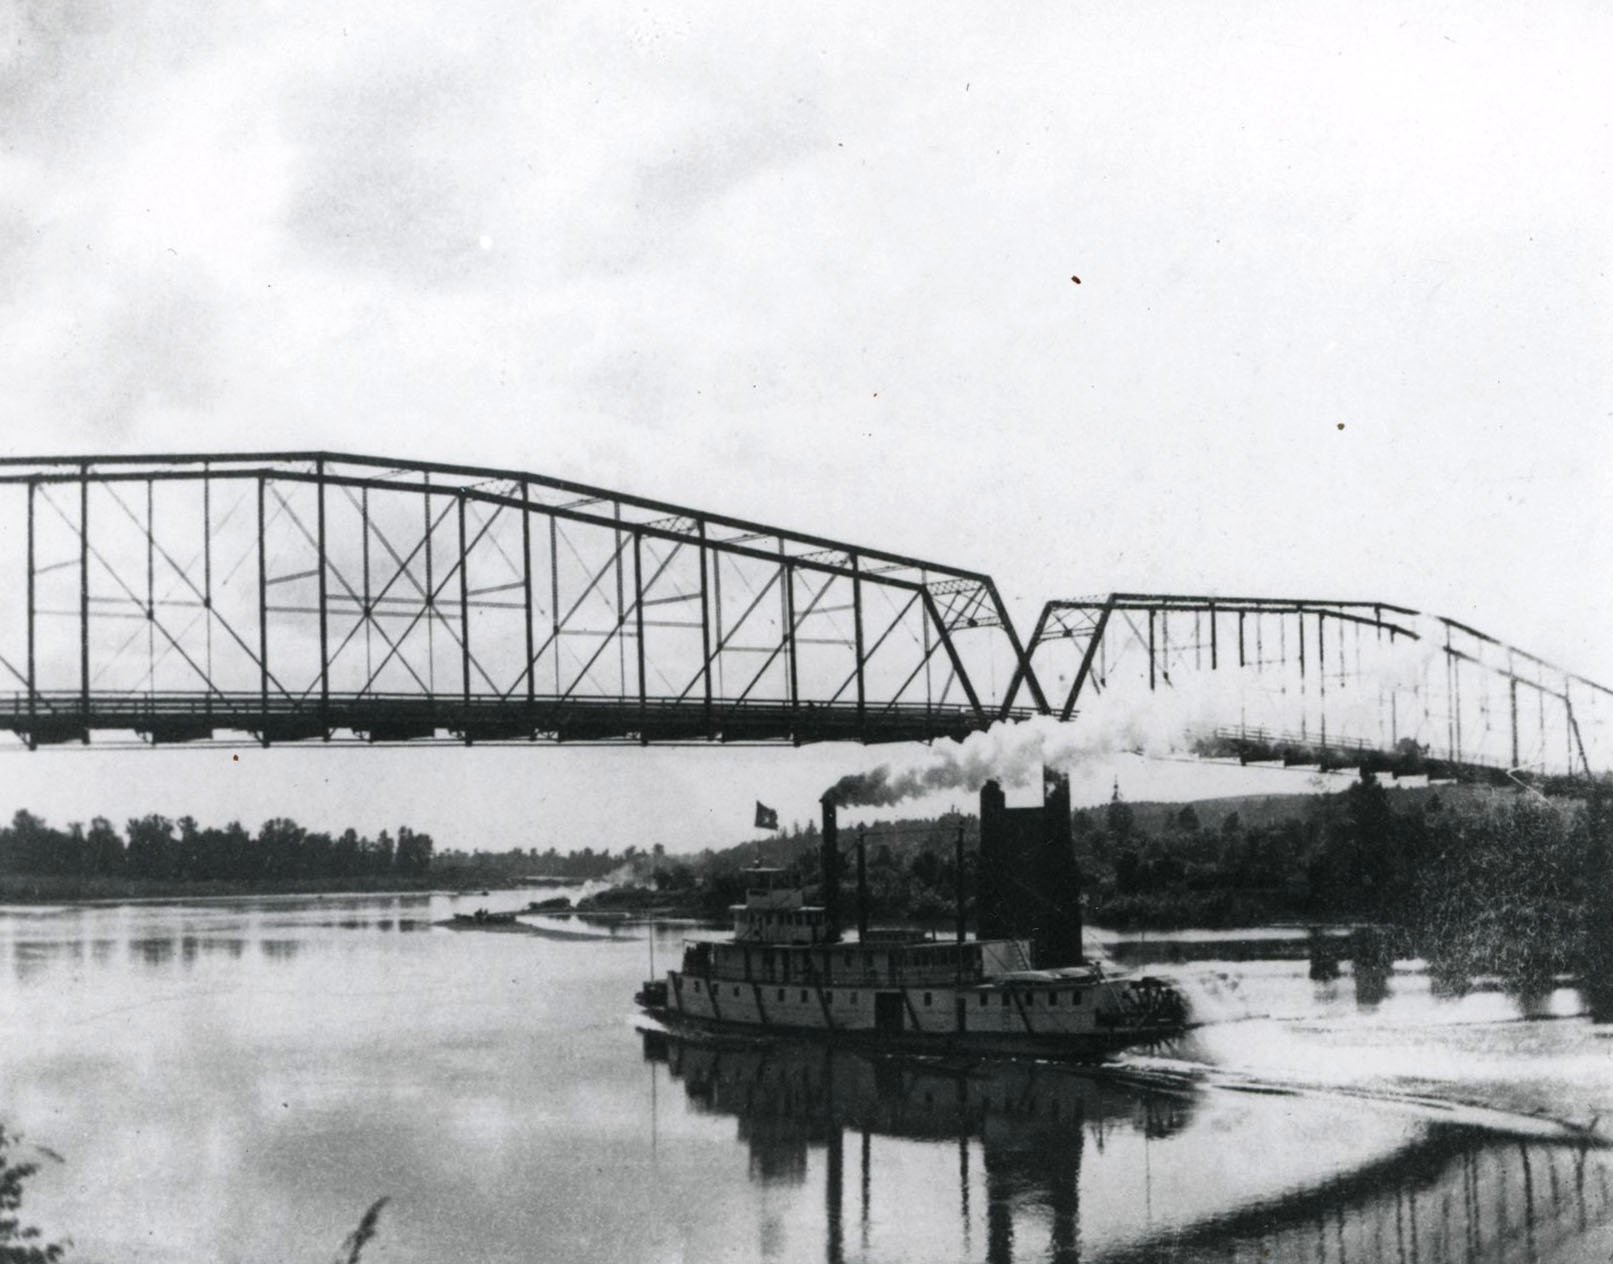 Steamboat passing under the Center Street Bridge over the Willamette, Salem